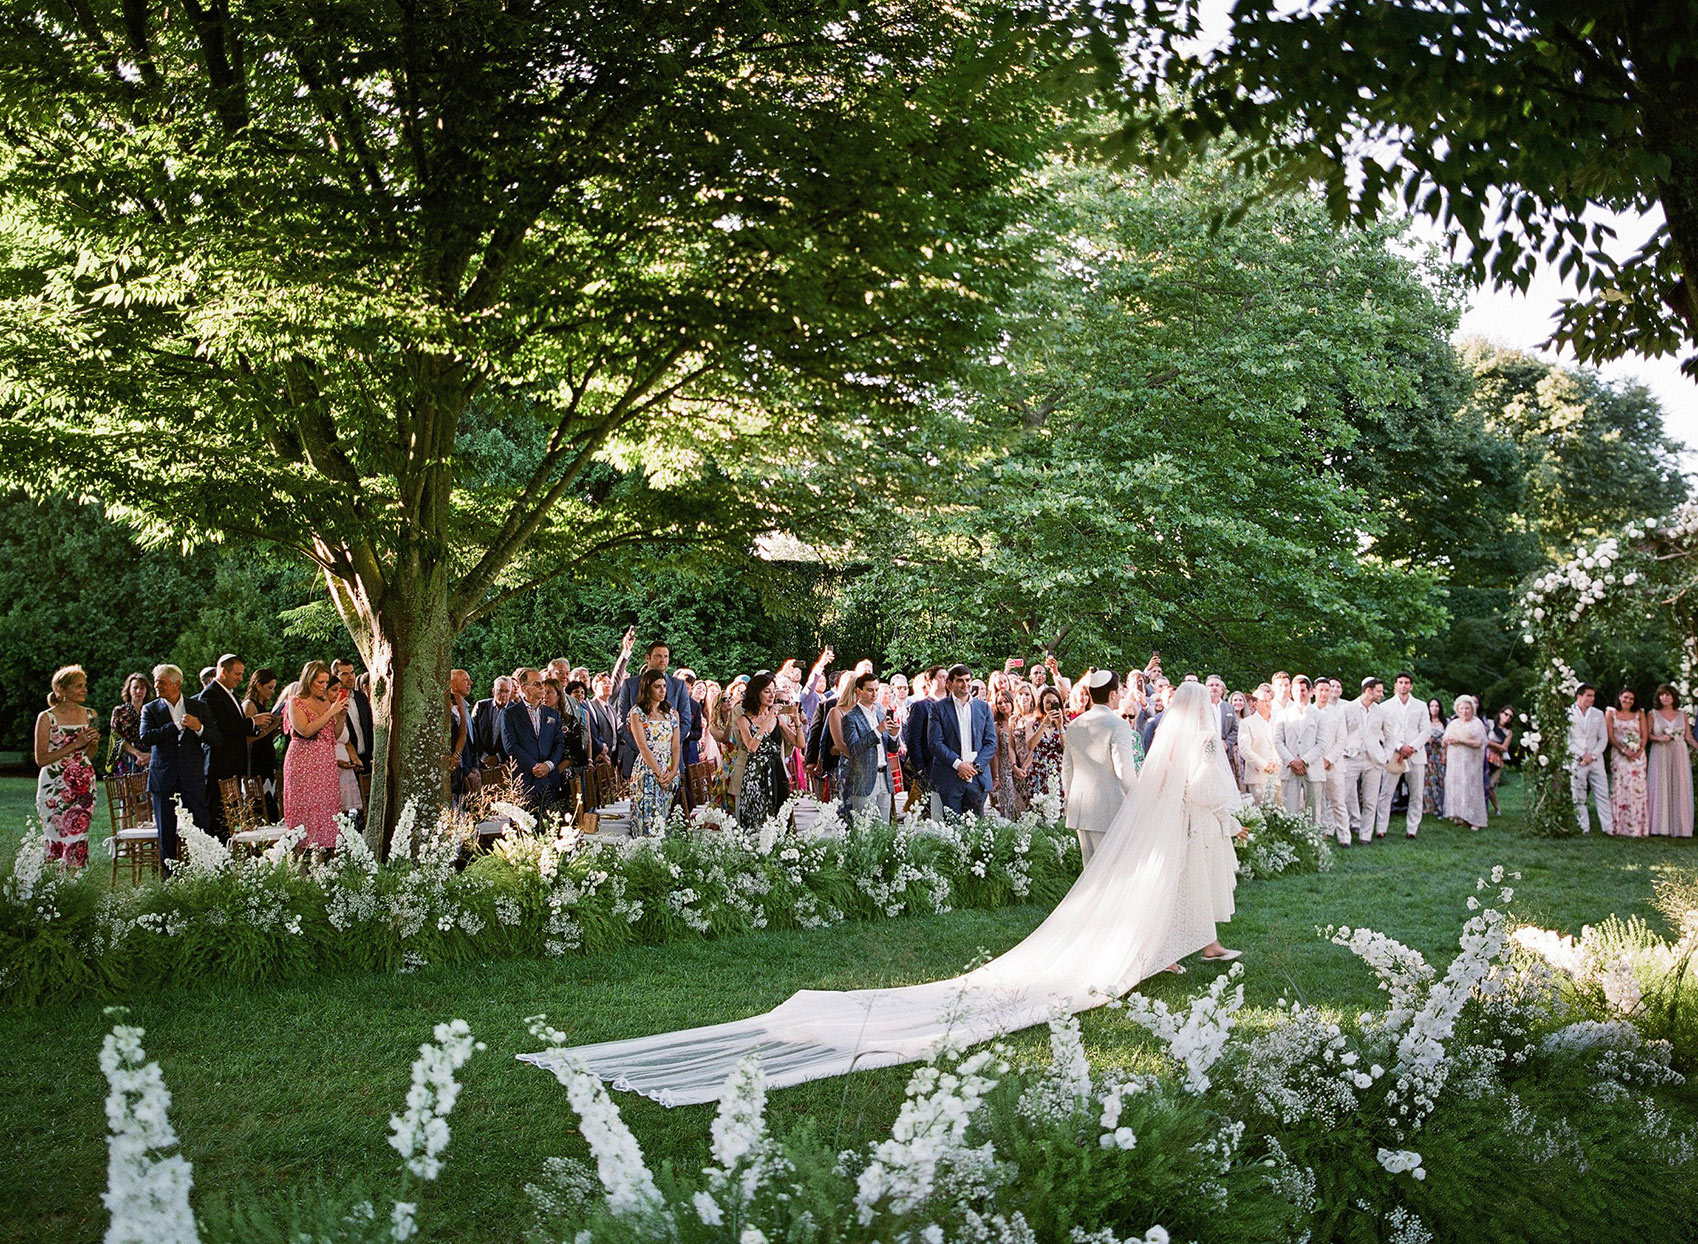 guests standing as bride processes at garden wedding